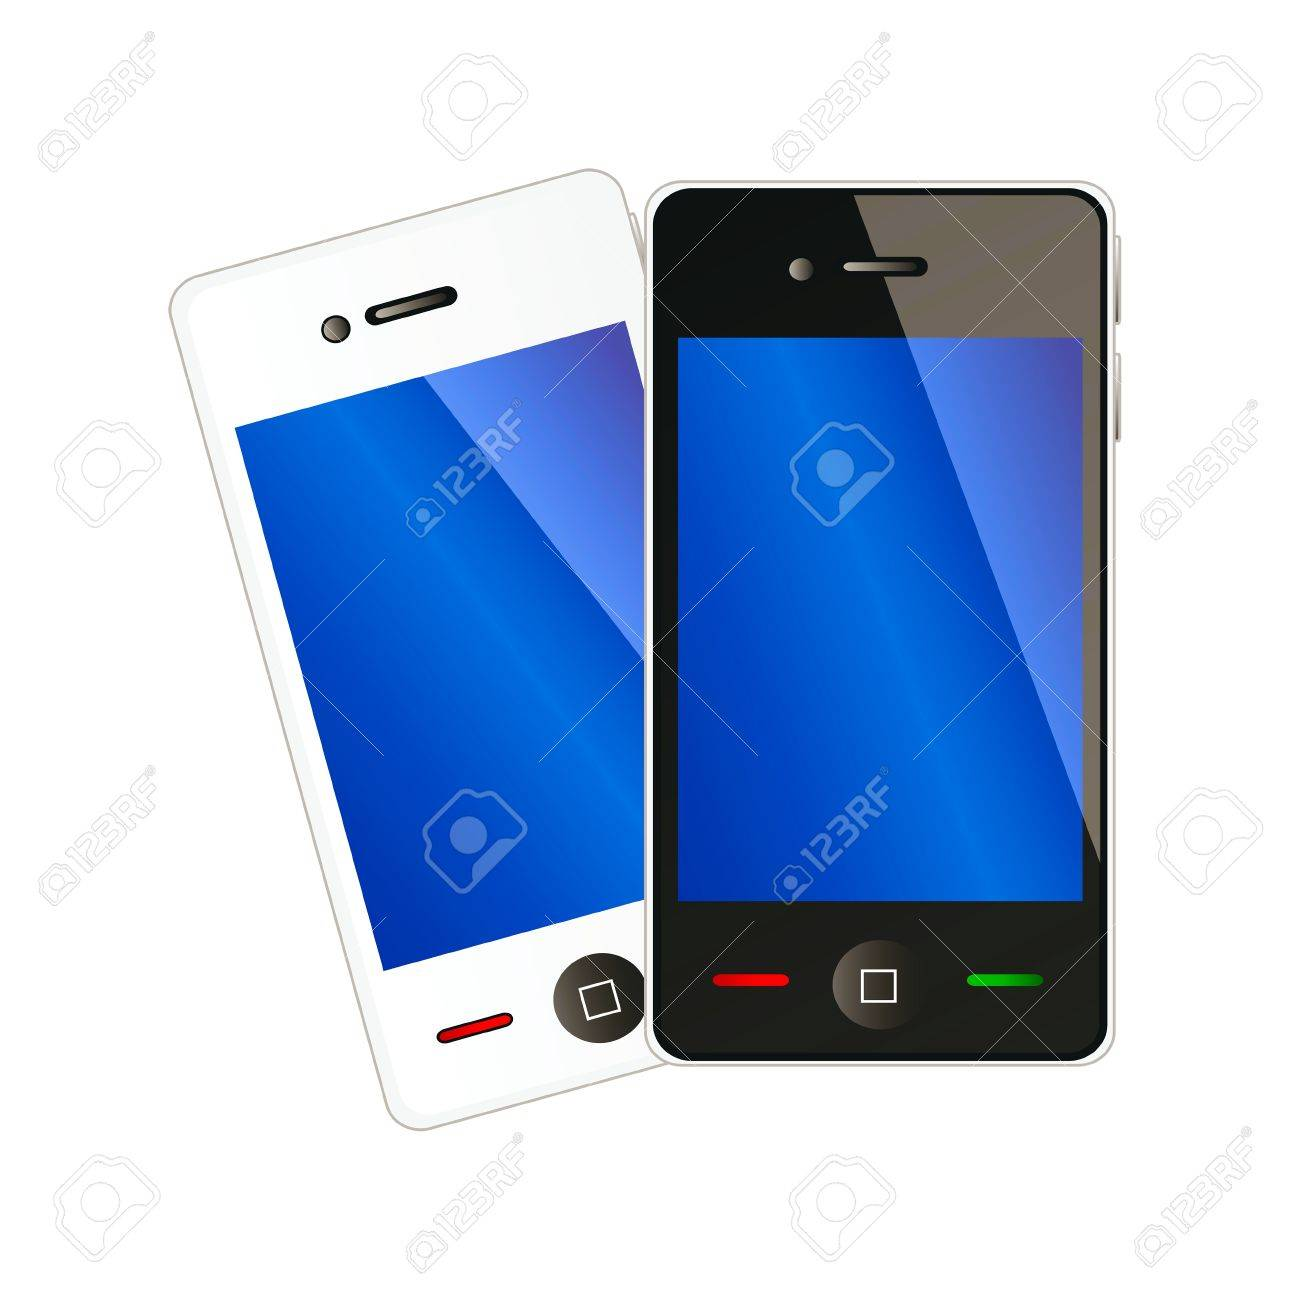 Two vector mobile phones with blue display in white and black color isolation over white background Stock Vector - 11423465